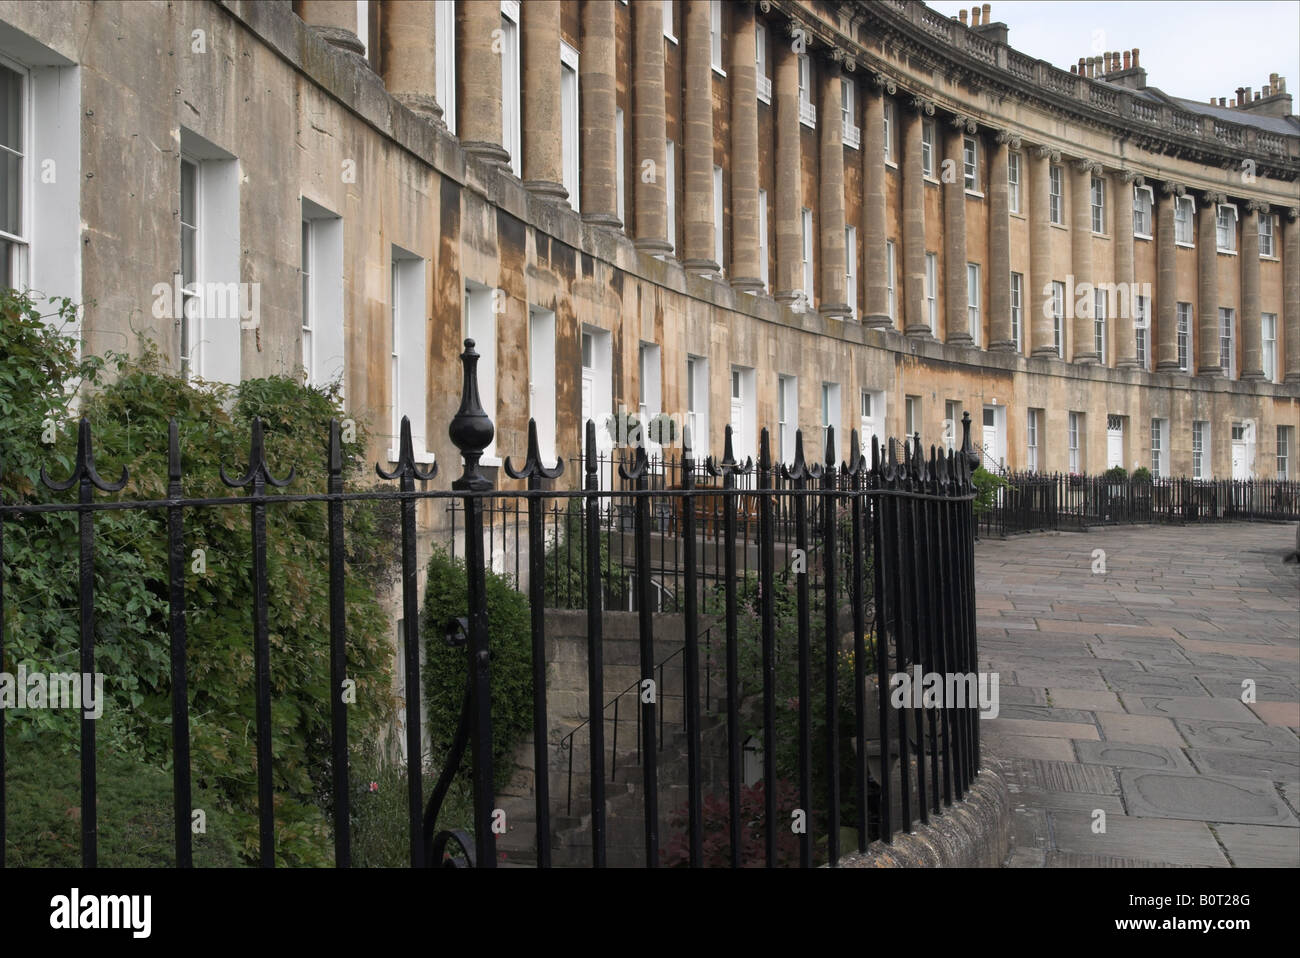 Georgian Architecture of The Royal Crescent, City of Bath, Somerset, England, UK. A UNESCO World Heritage Site. Stock Photo